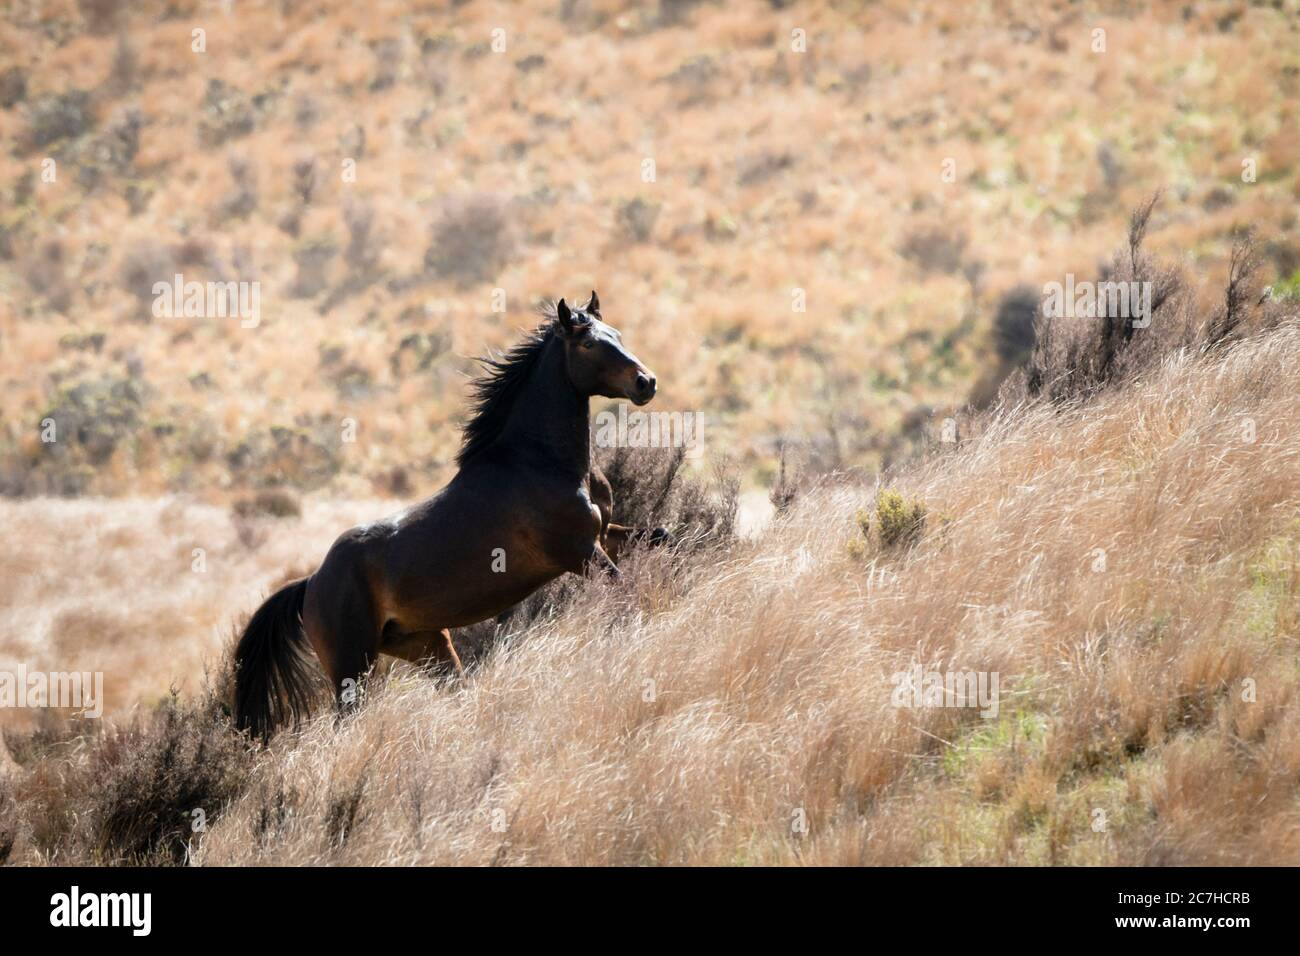 A Black Kaimanawa Wild Horse Running Up The Red Tussock Hills Stock Photo Alamy